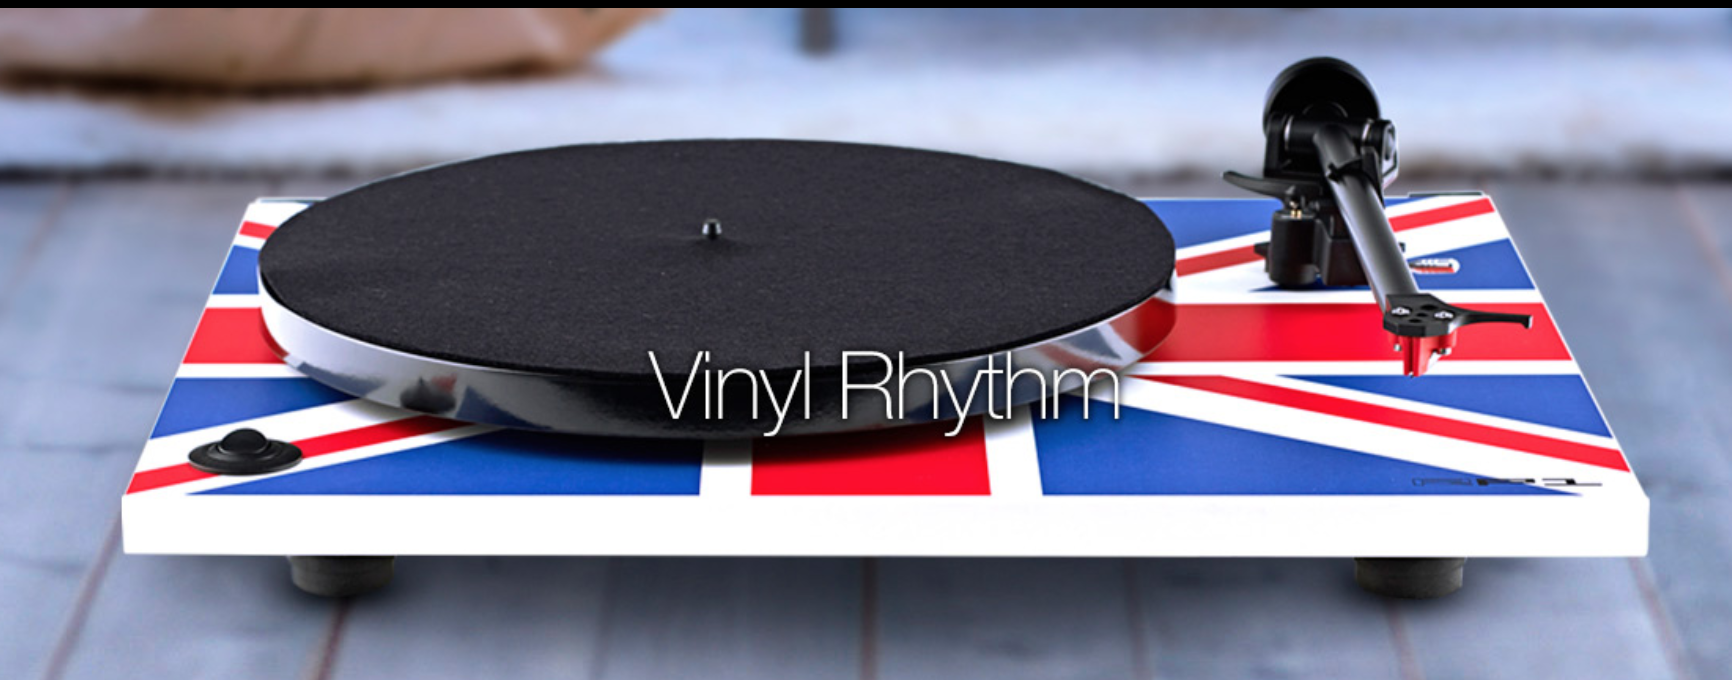 Rega Planar 1 starts at £249.00, the Planar 3 with Elys2 is £649.00 and the Planar 6 with Exact is £1259.00